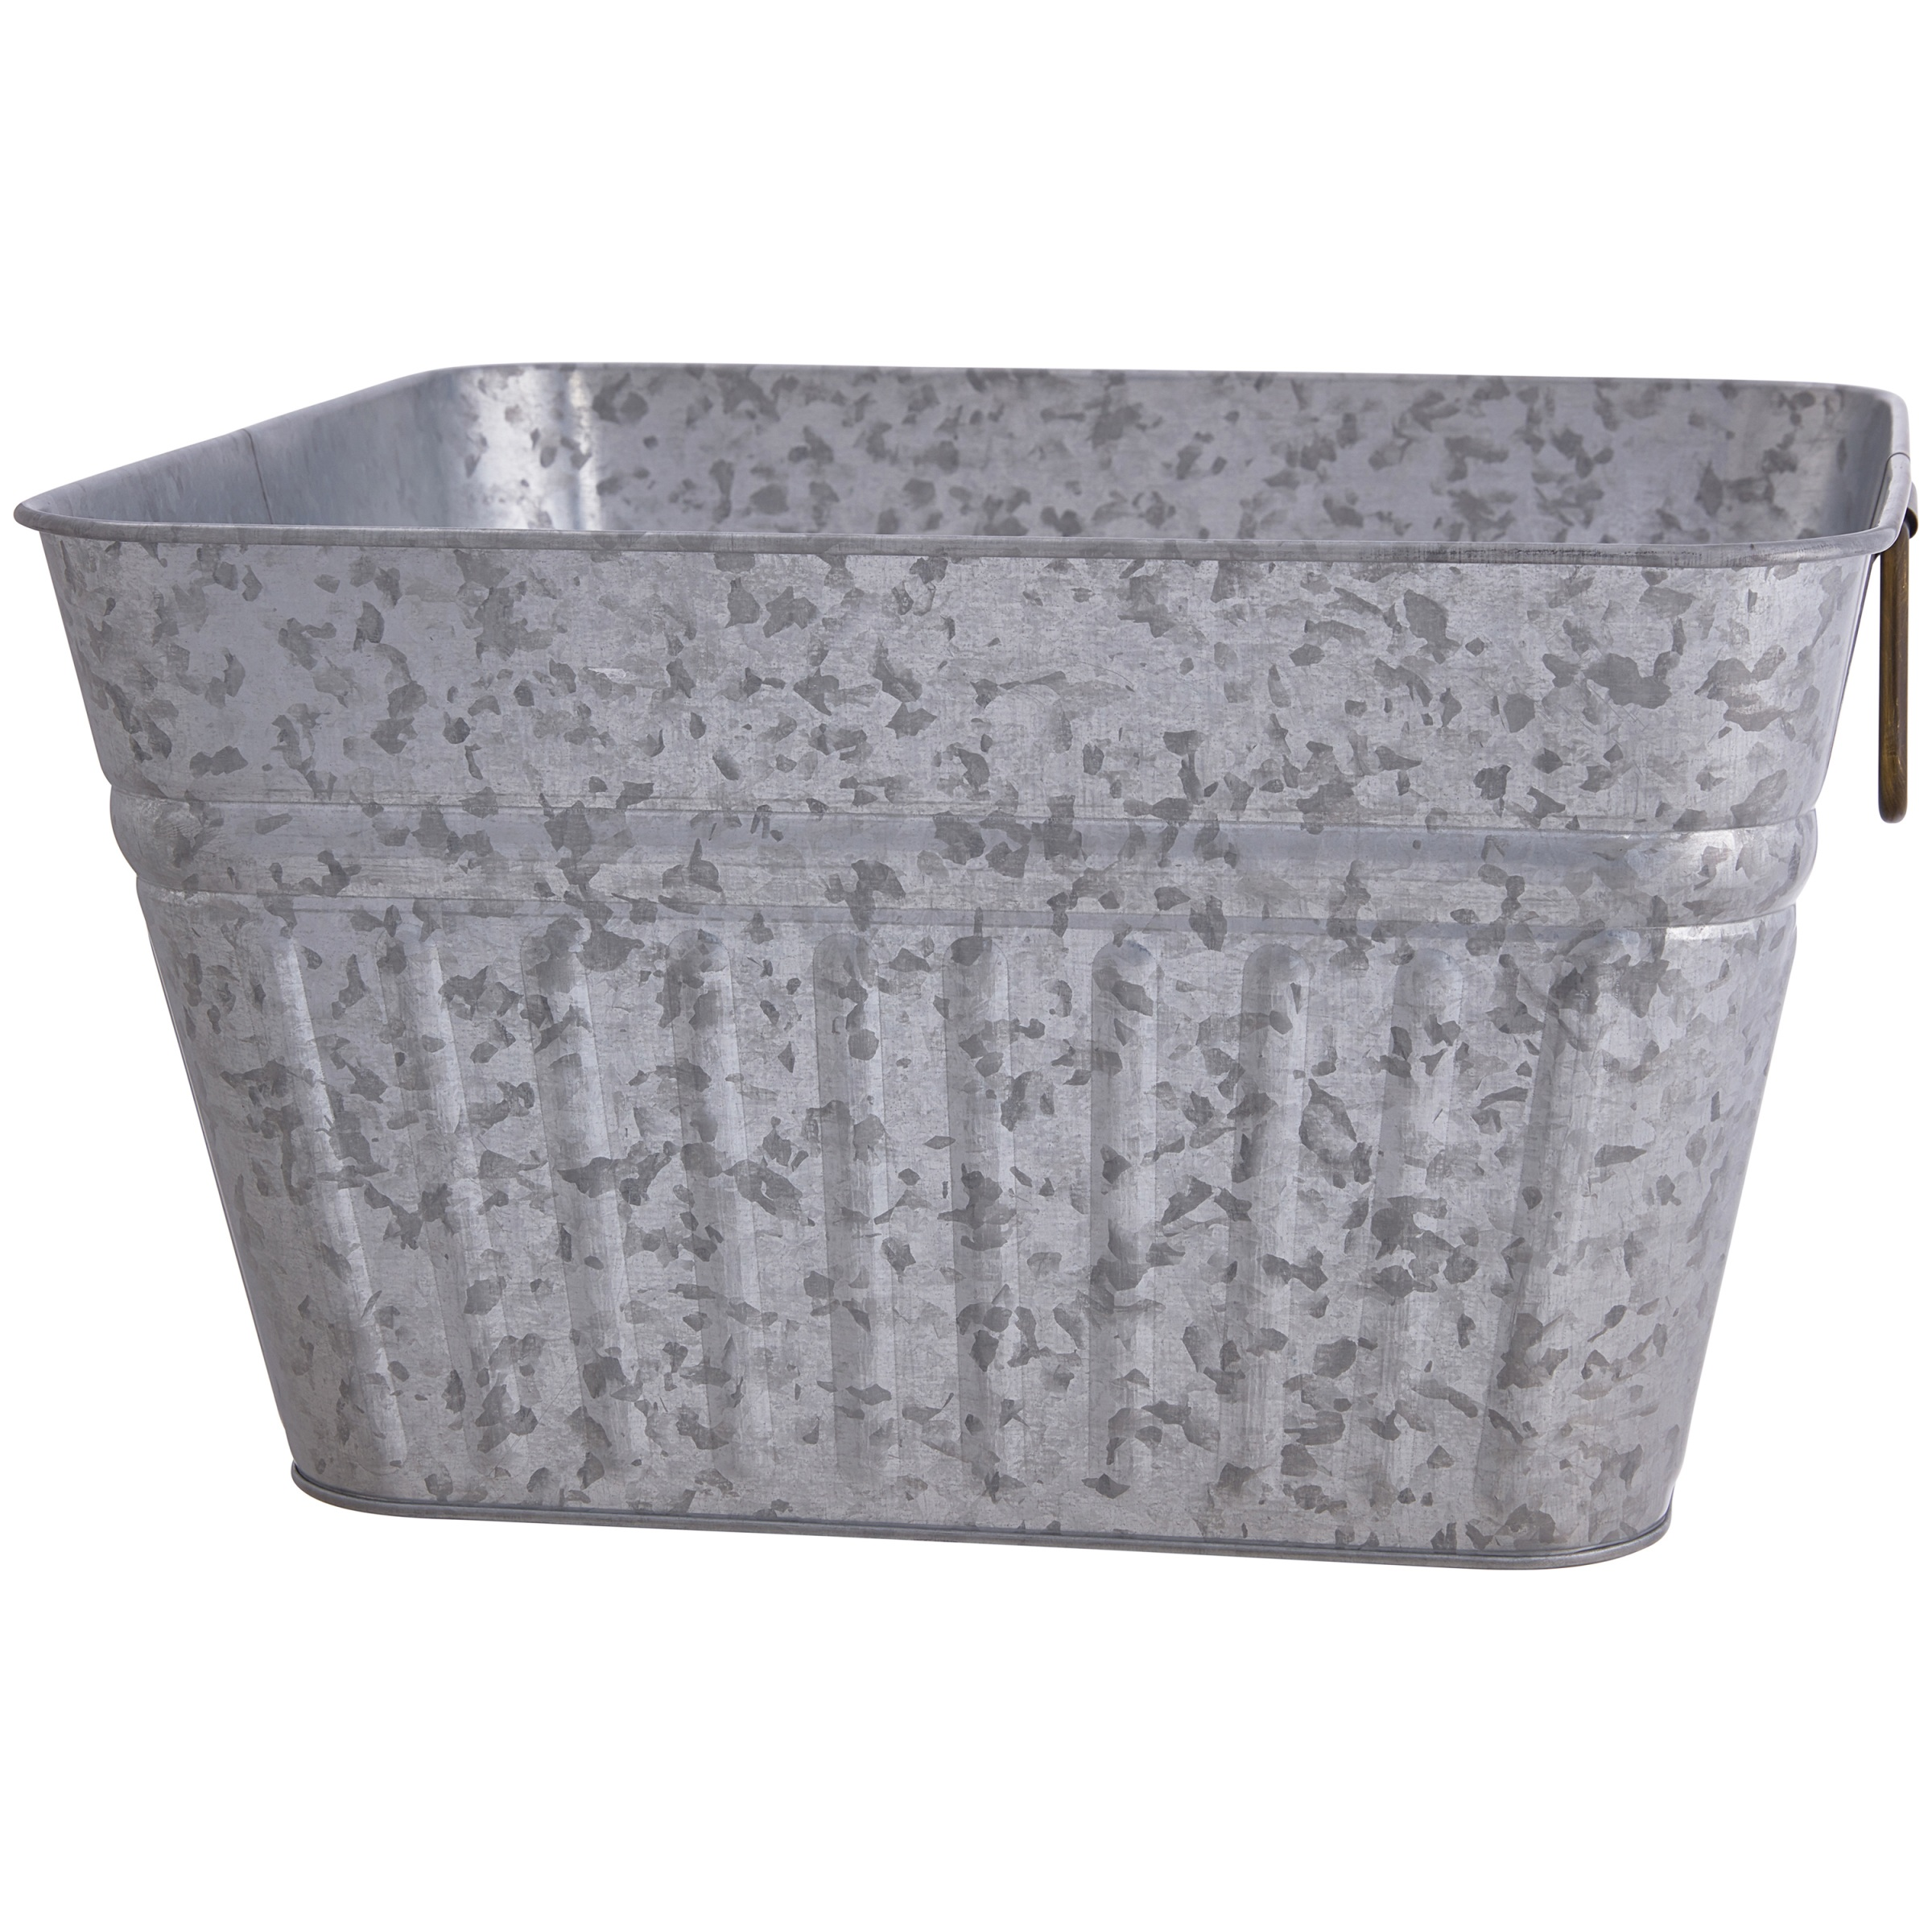 Better Homes and Gardens Galvanized Steel Square Tub